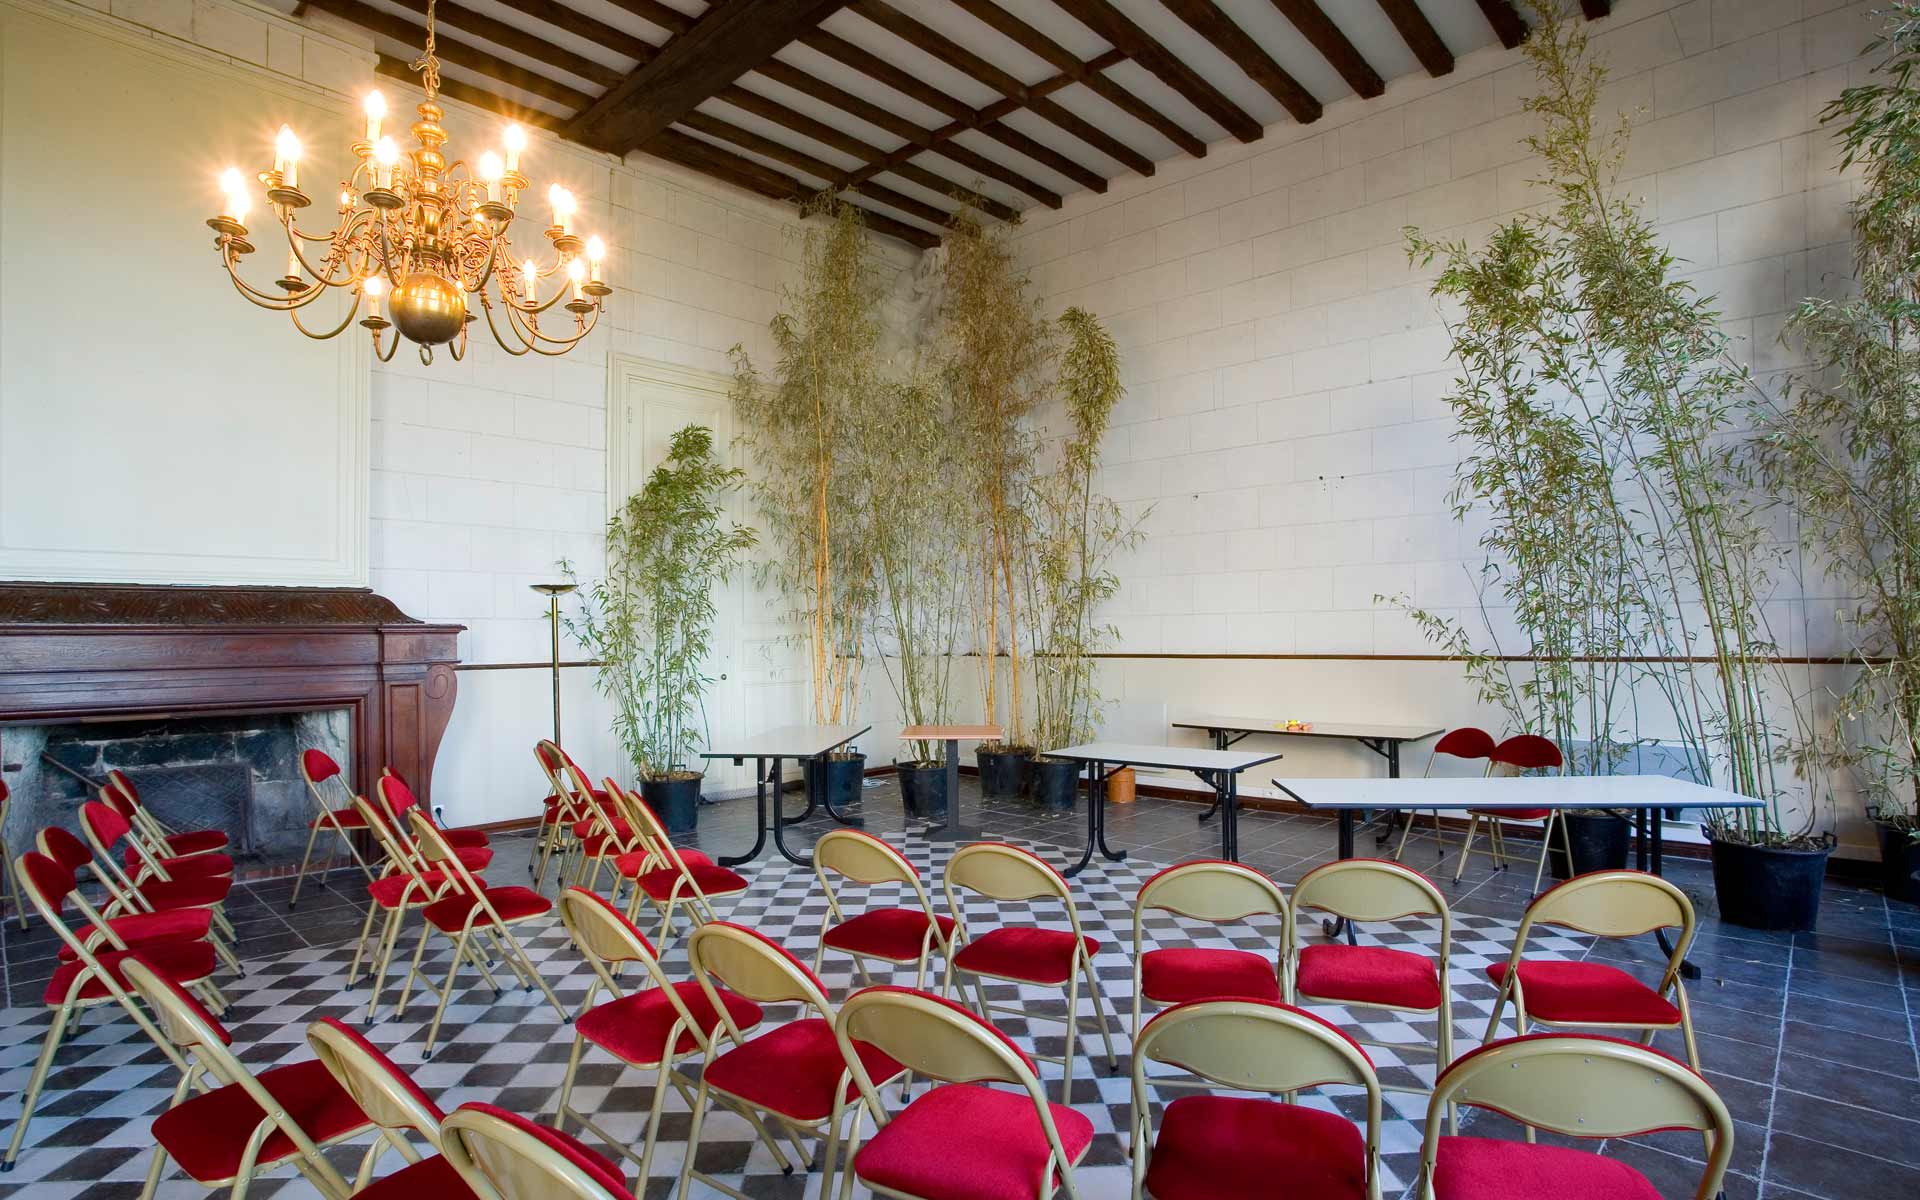 seminaire-chateau-7-tours-salle-credit-2019